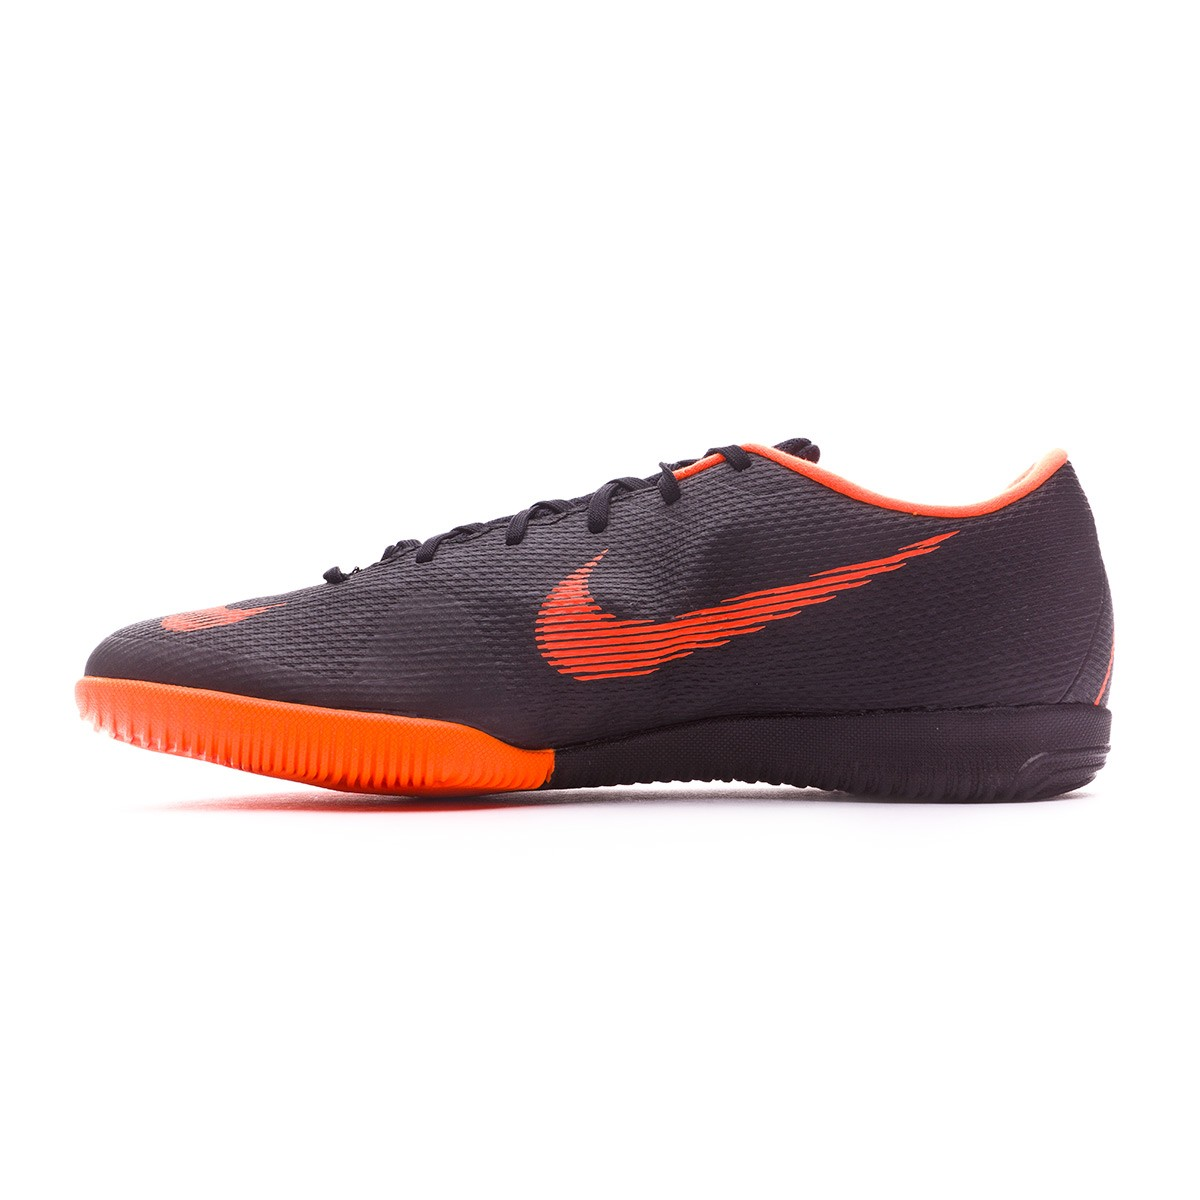 c0fc9b3277107 Futsal Boot Nike Mercurial VaporX XII Academy IC Black-Total orange-White -  Tienda de fútbol Fútbol Emotion